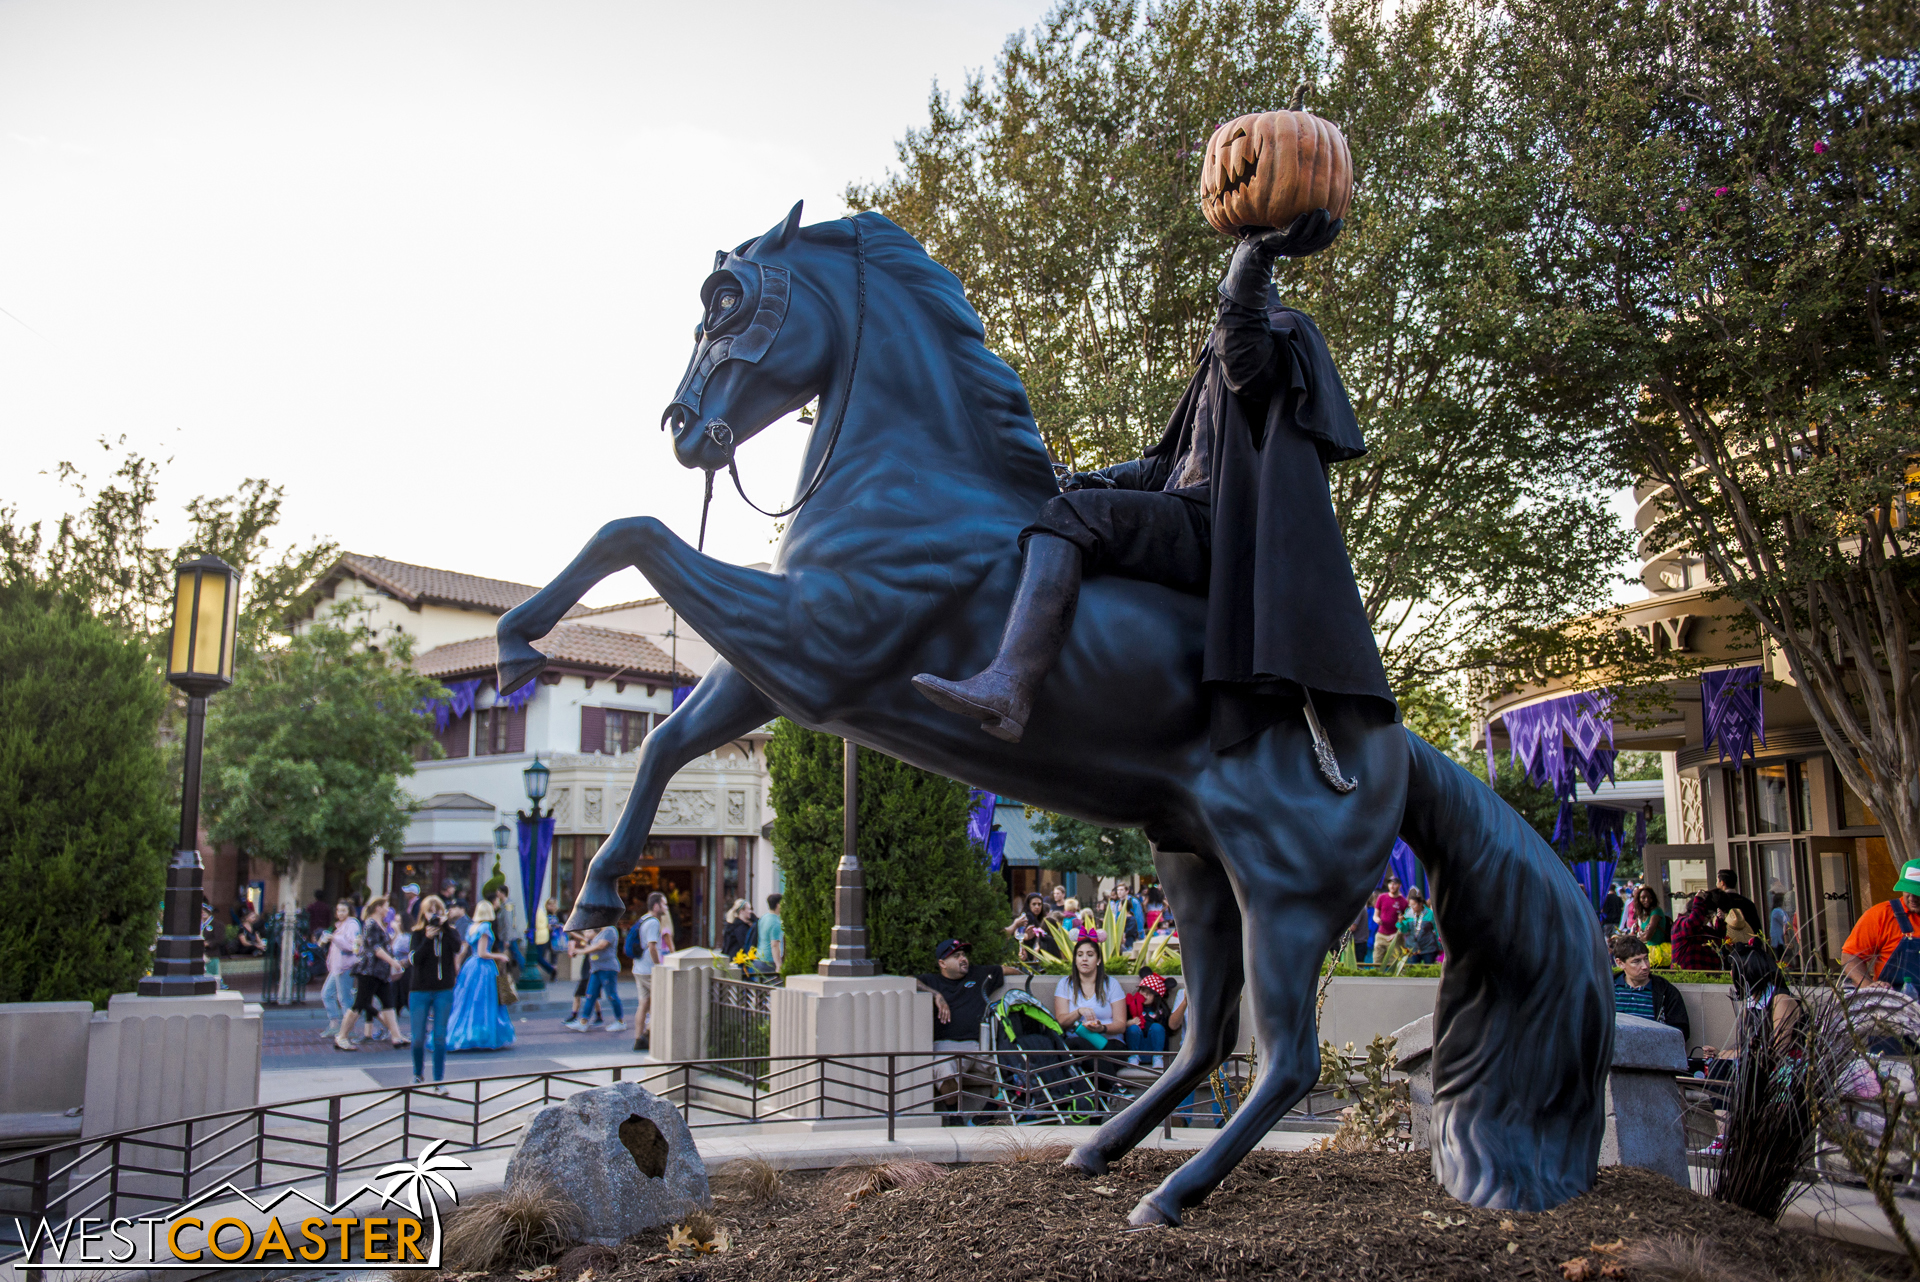 Nearby, a Headless Horseman statue provided a great photo op.